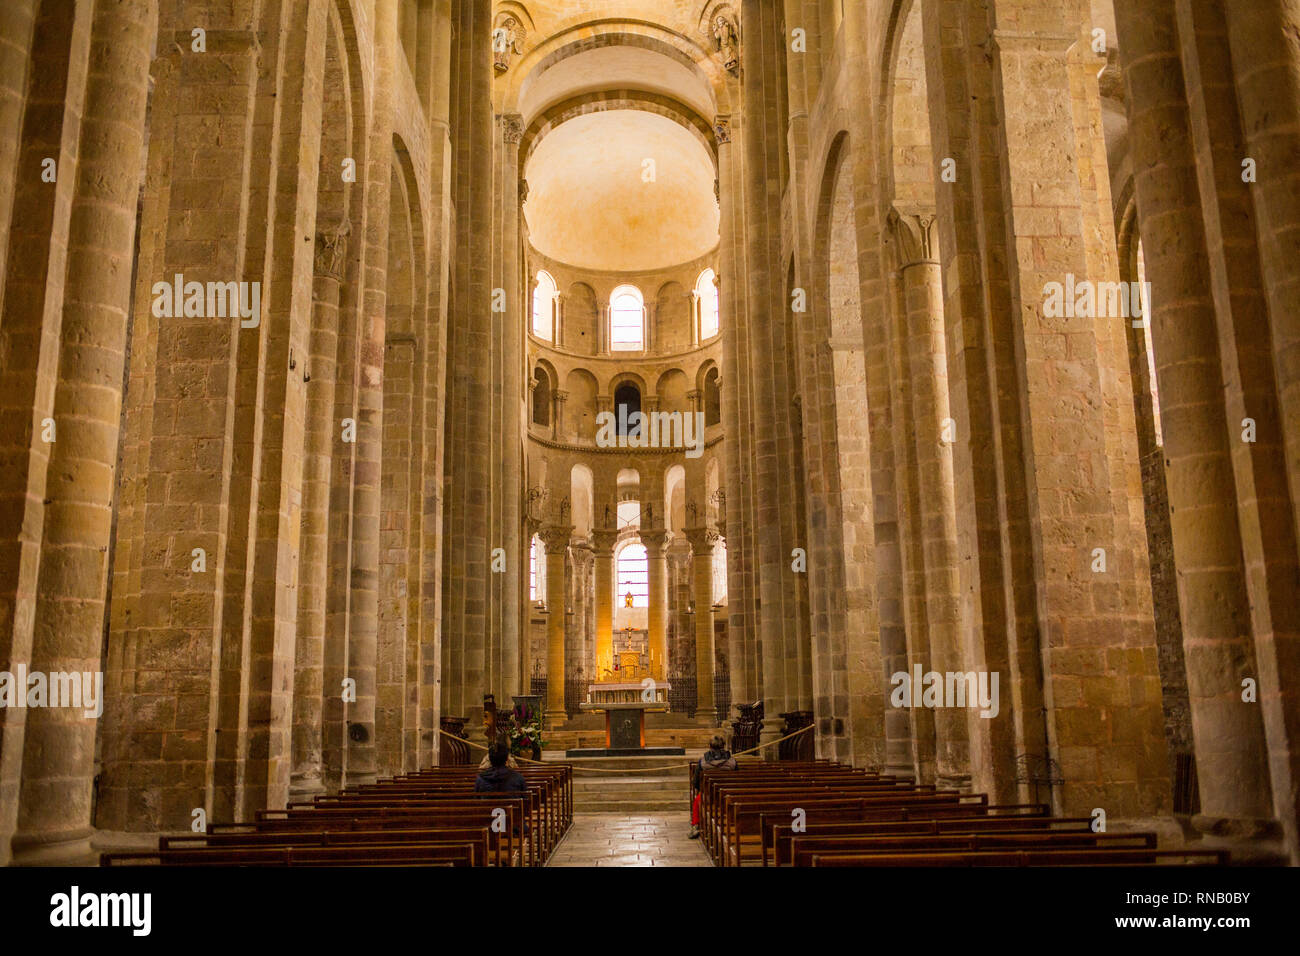 The Abbey Church of Conques France. - Stock Image